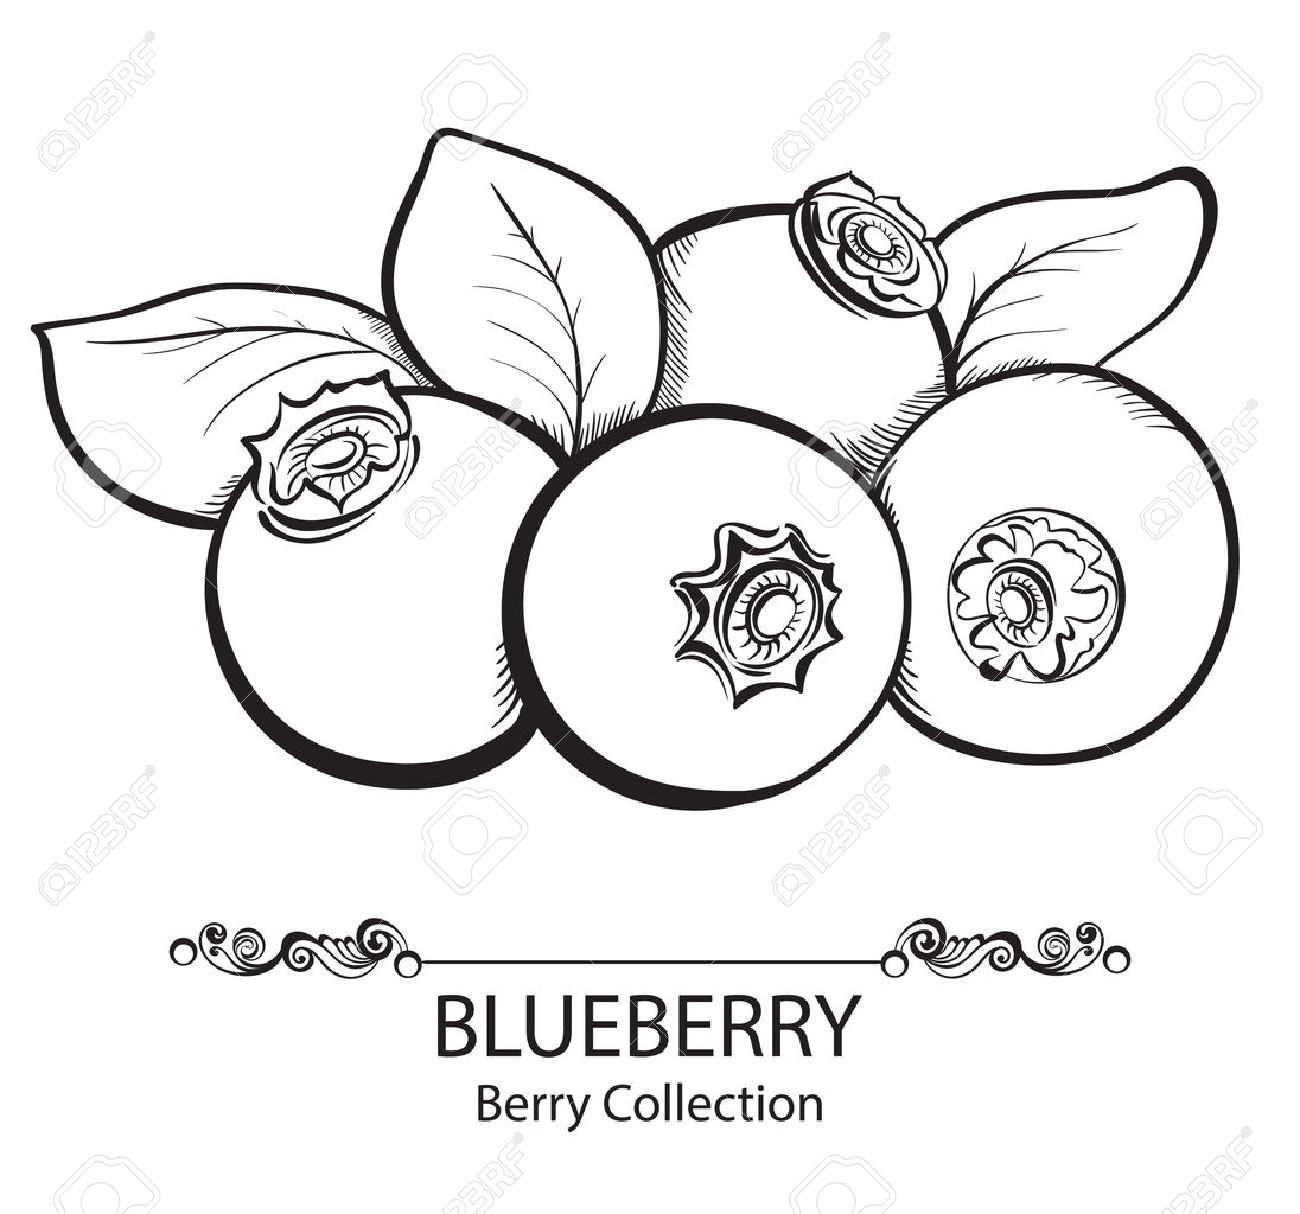 Black And White Pictures Of Blueberries